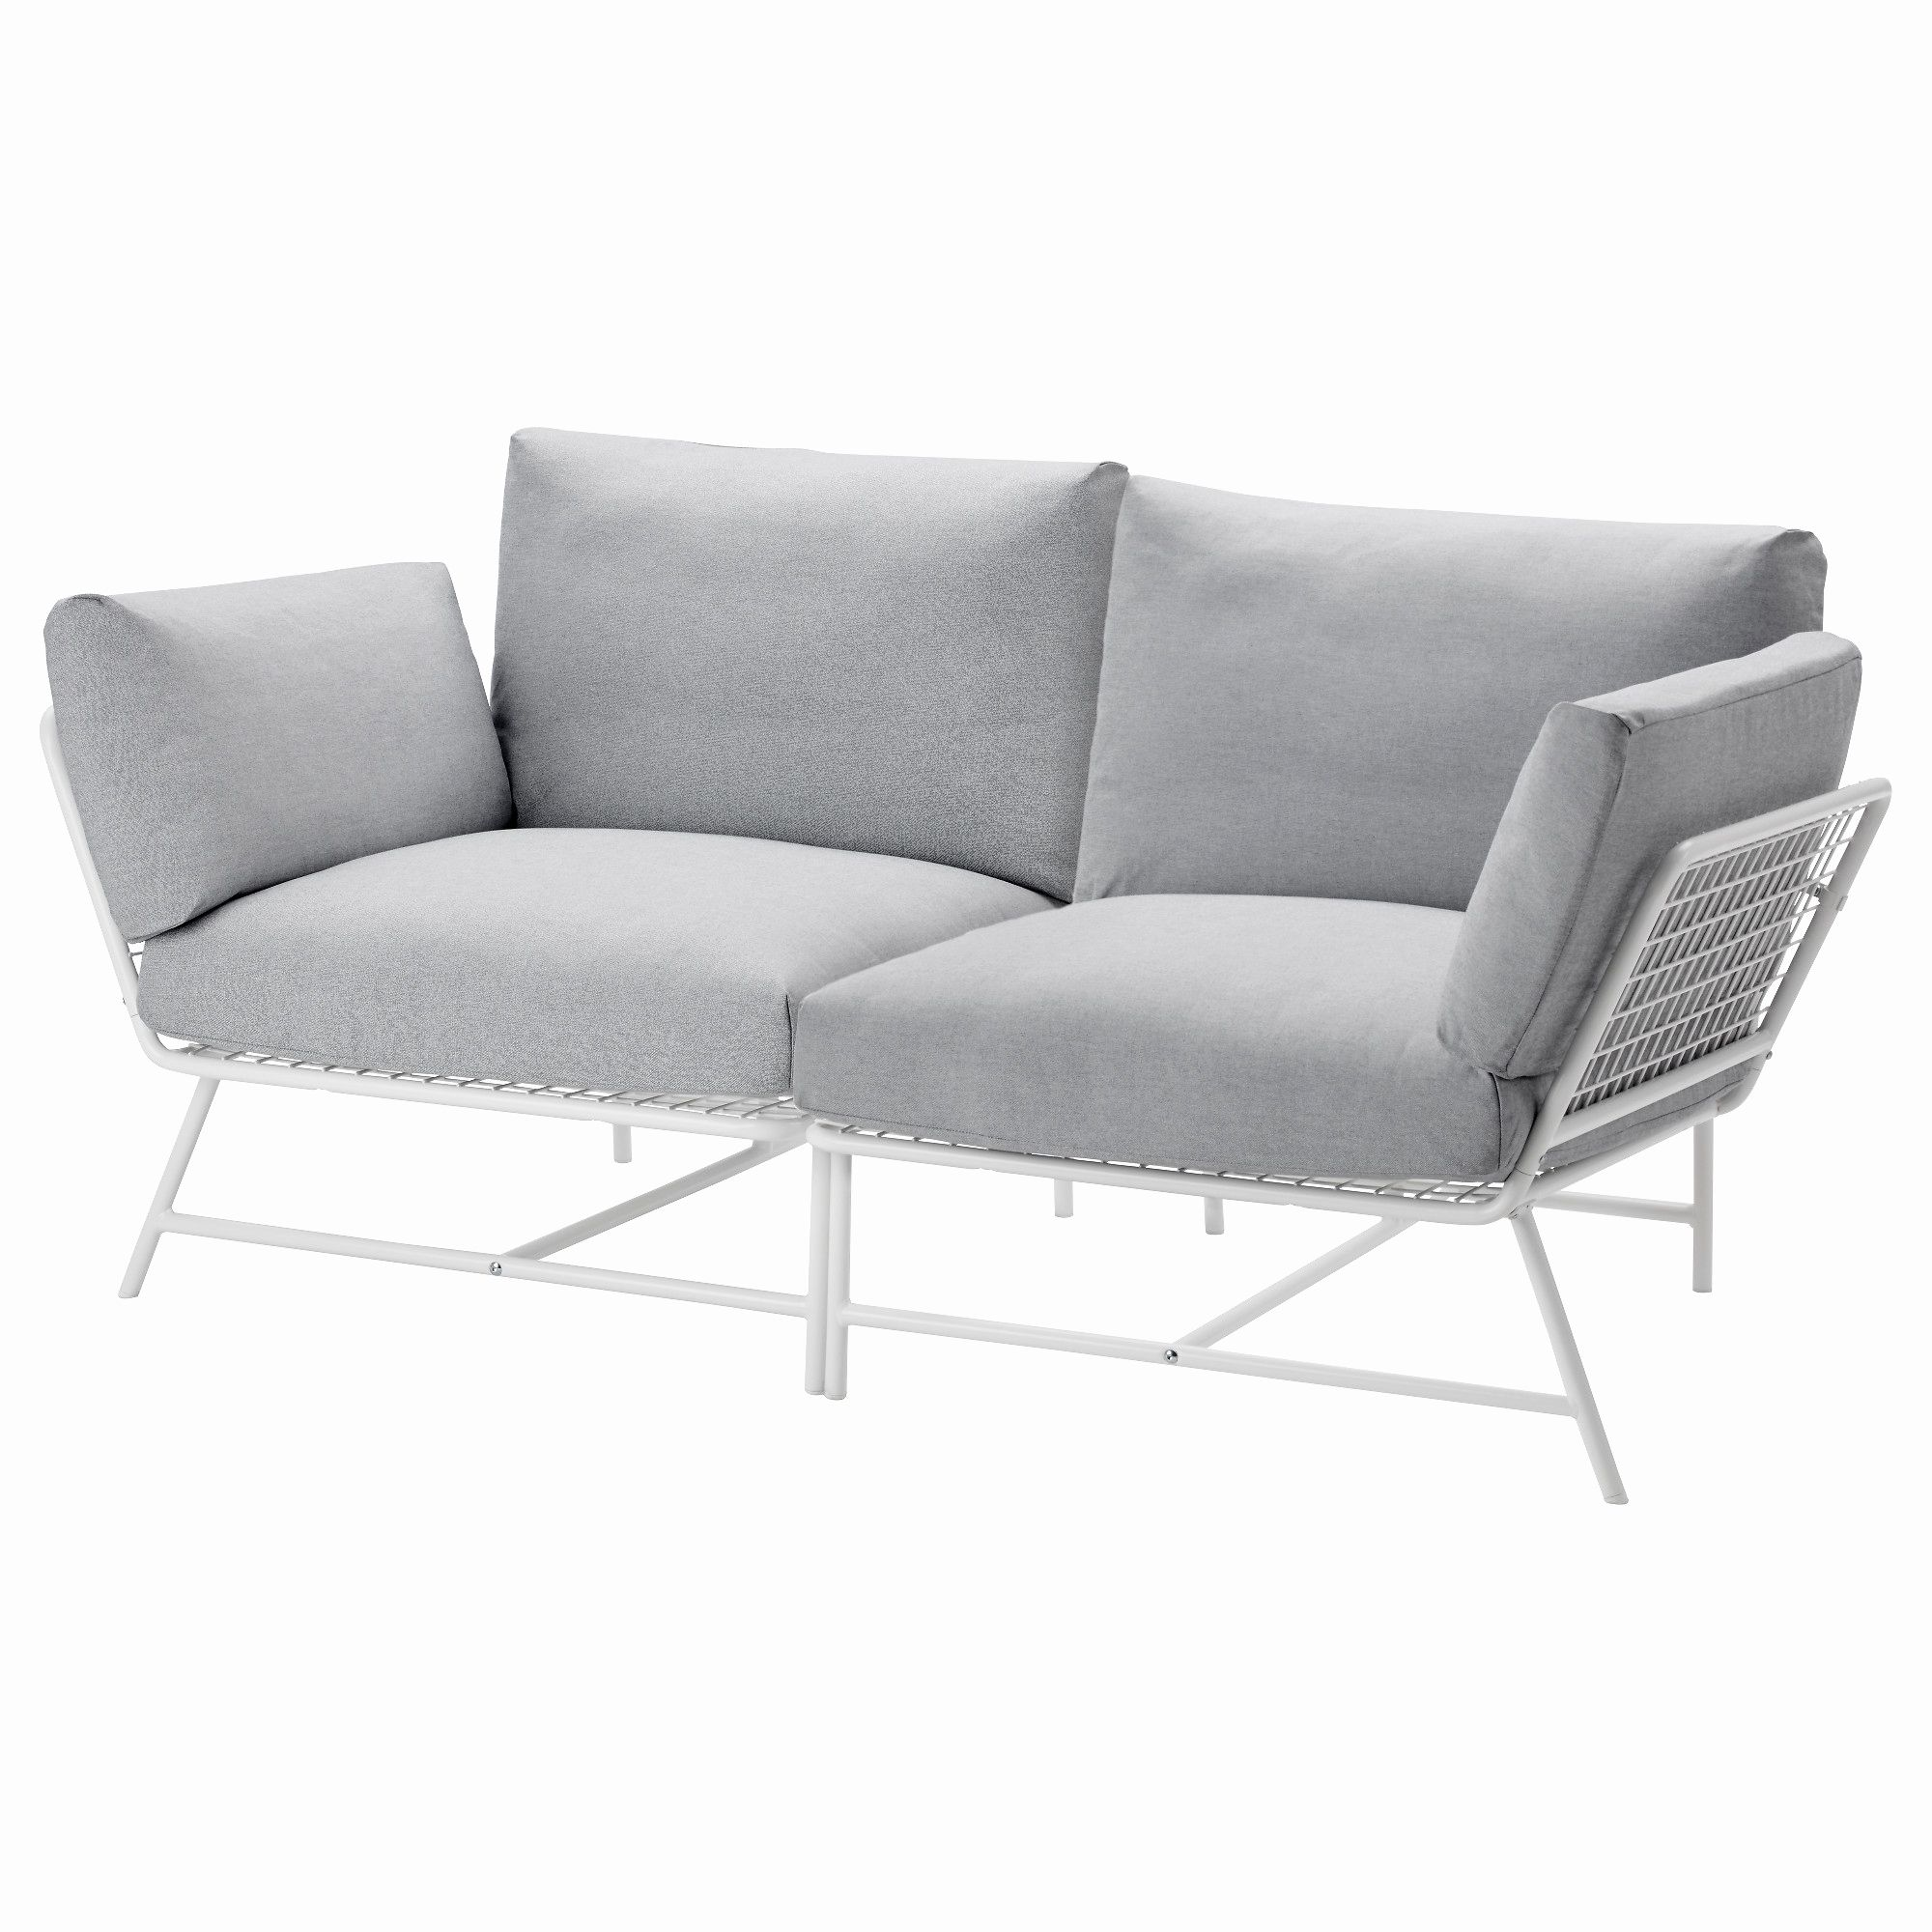 Good Mini Sofa For Bedroom Picture Mini Sofa For Bedroom Awesome